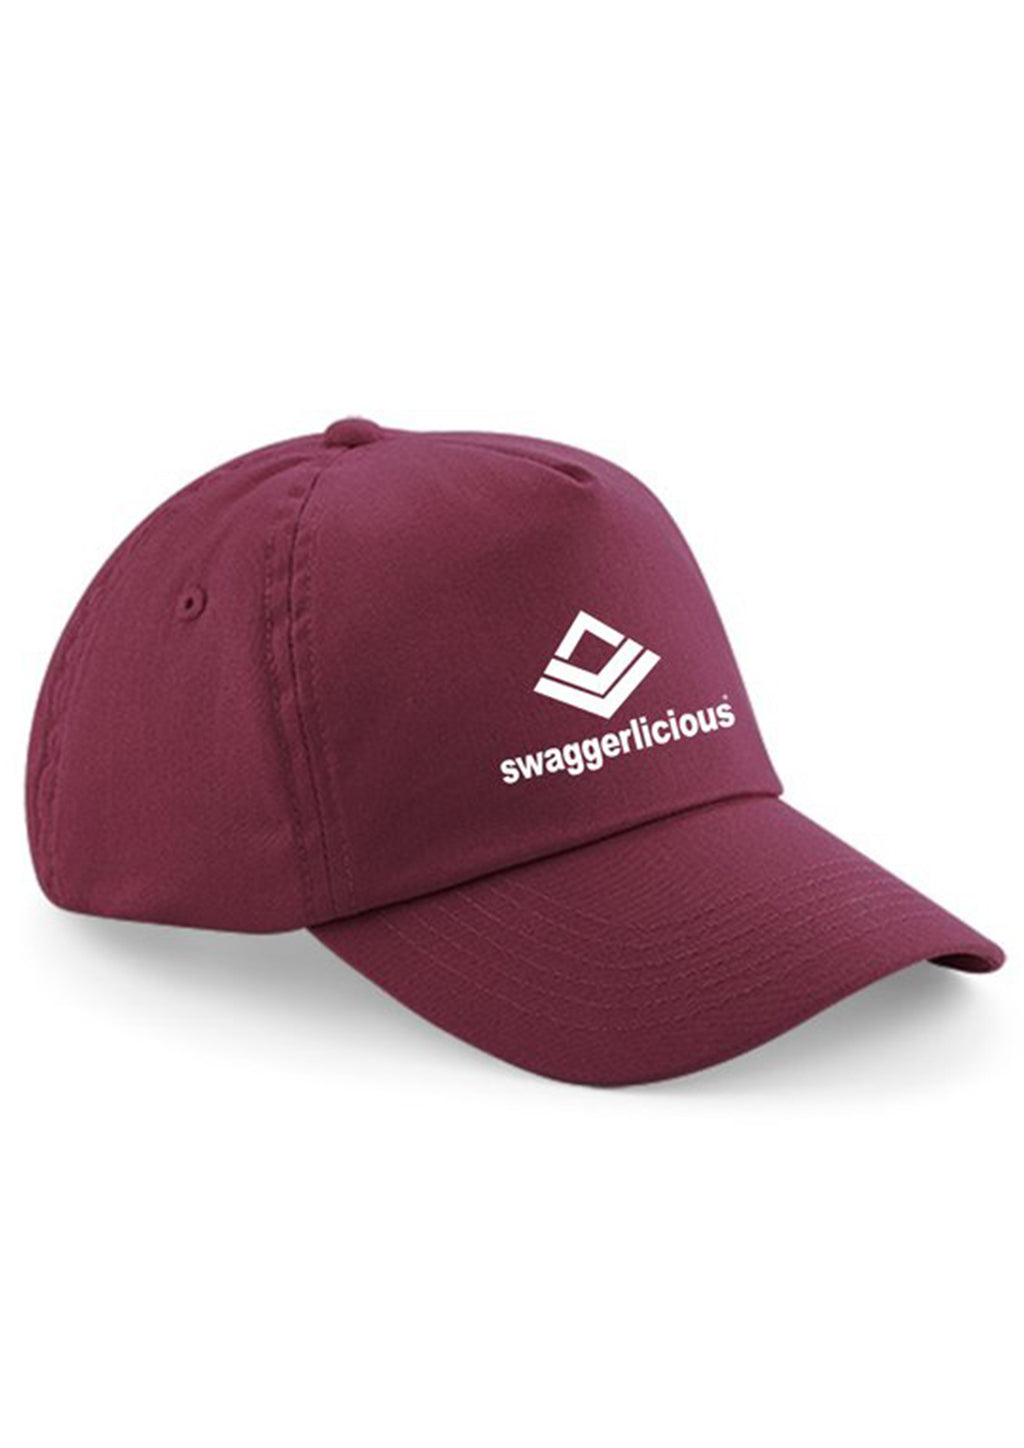 Swaggerlicious Classic Burgundy Sports Low Peak Cap with White Logo - swaggerlicious-clothing.com